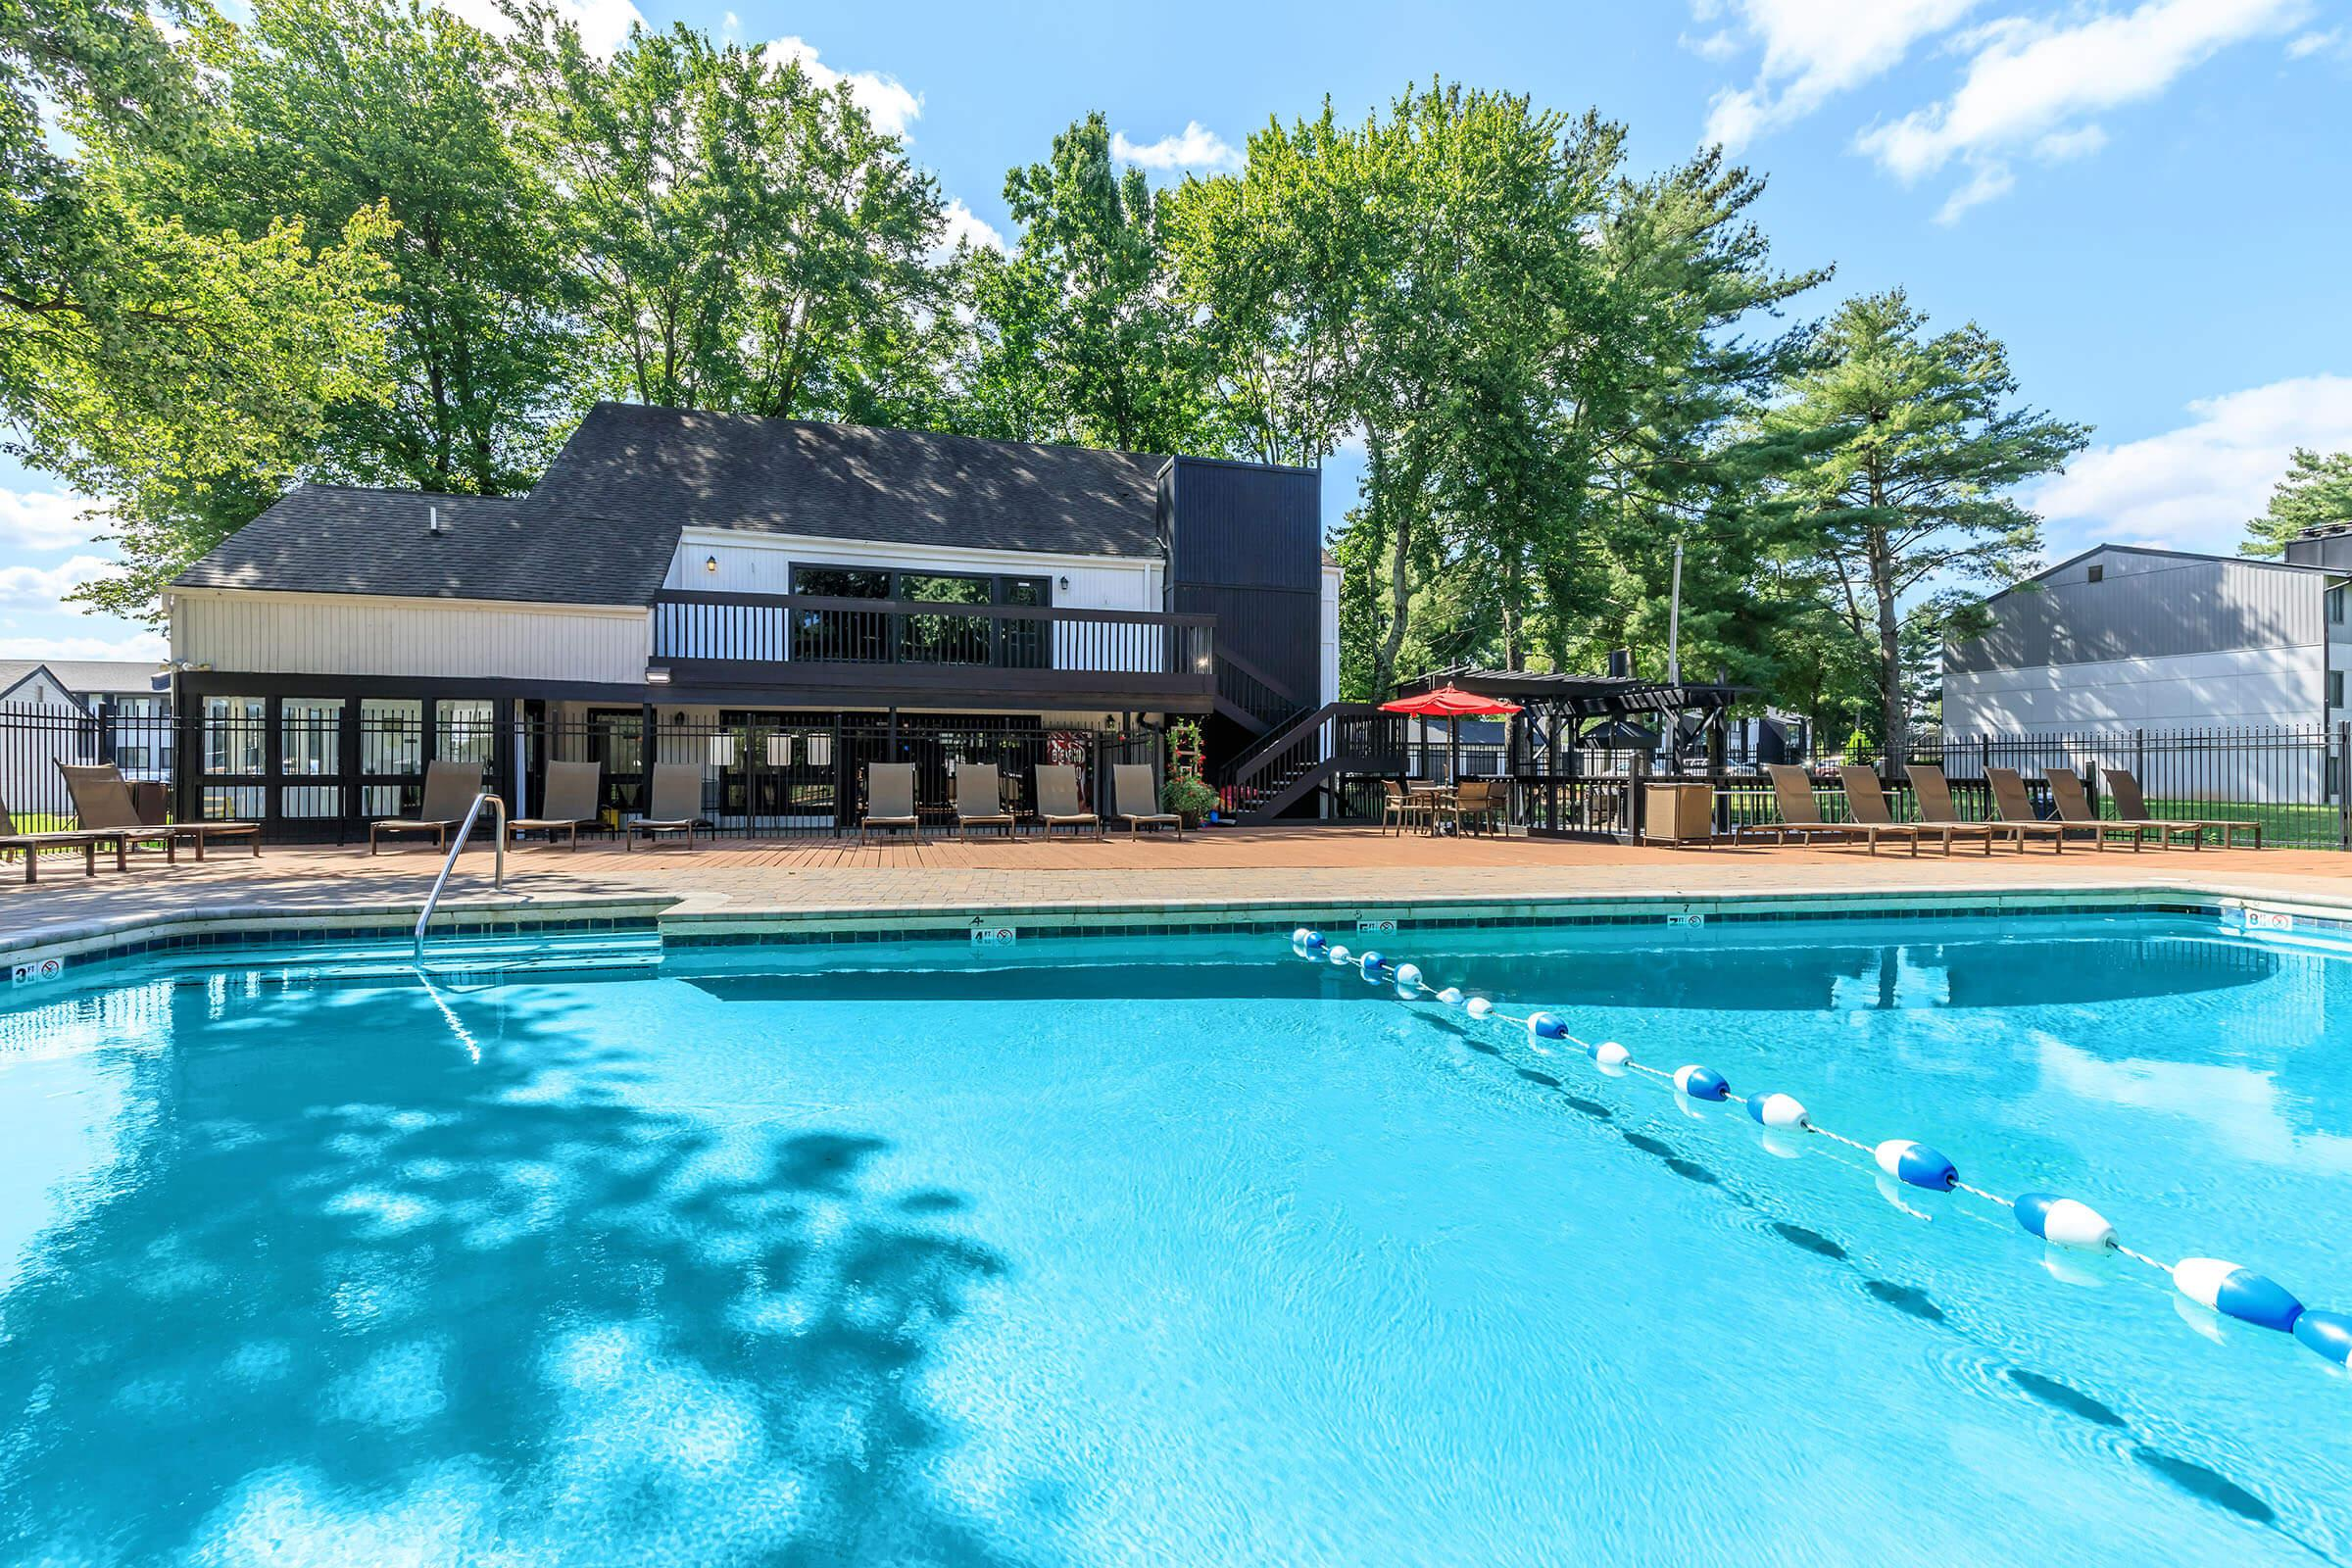 Check Out Our Marvelous Pools We Have Here at Brendon Park Apartments